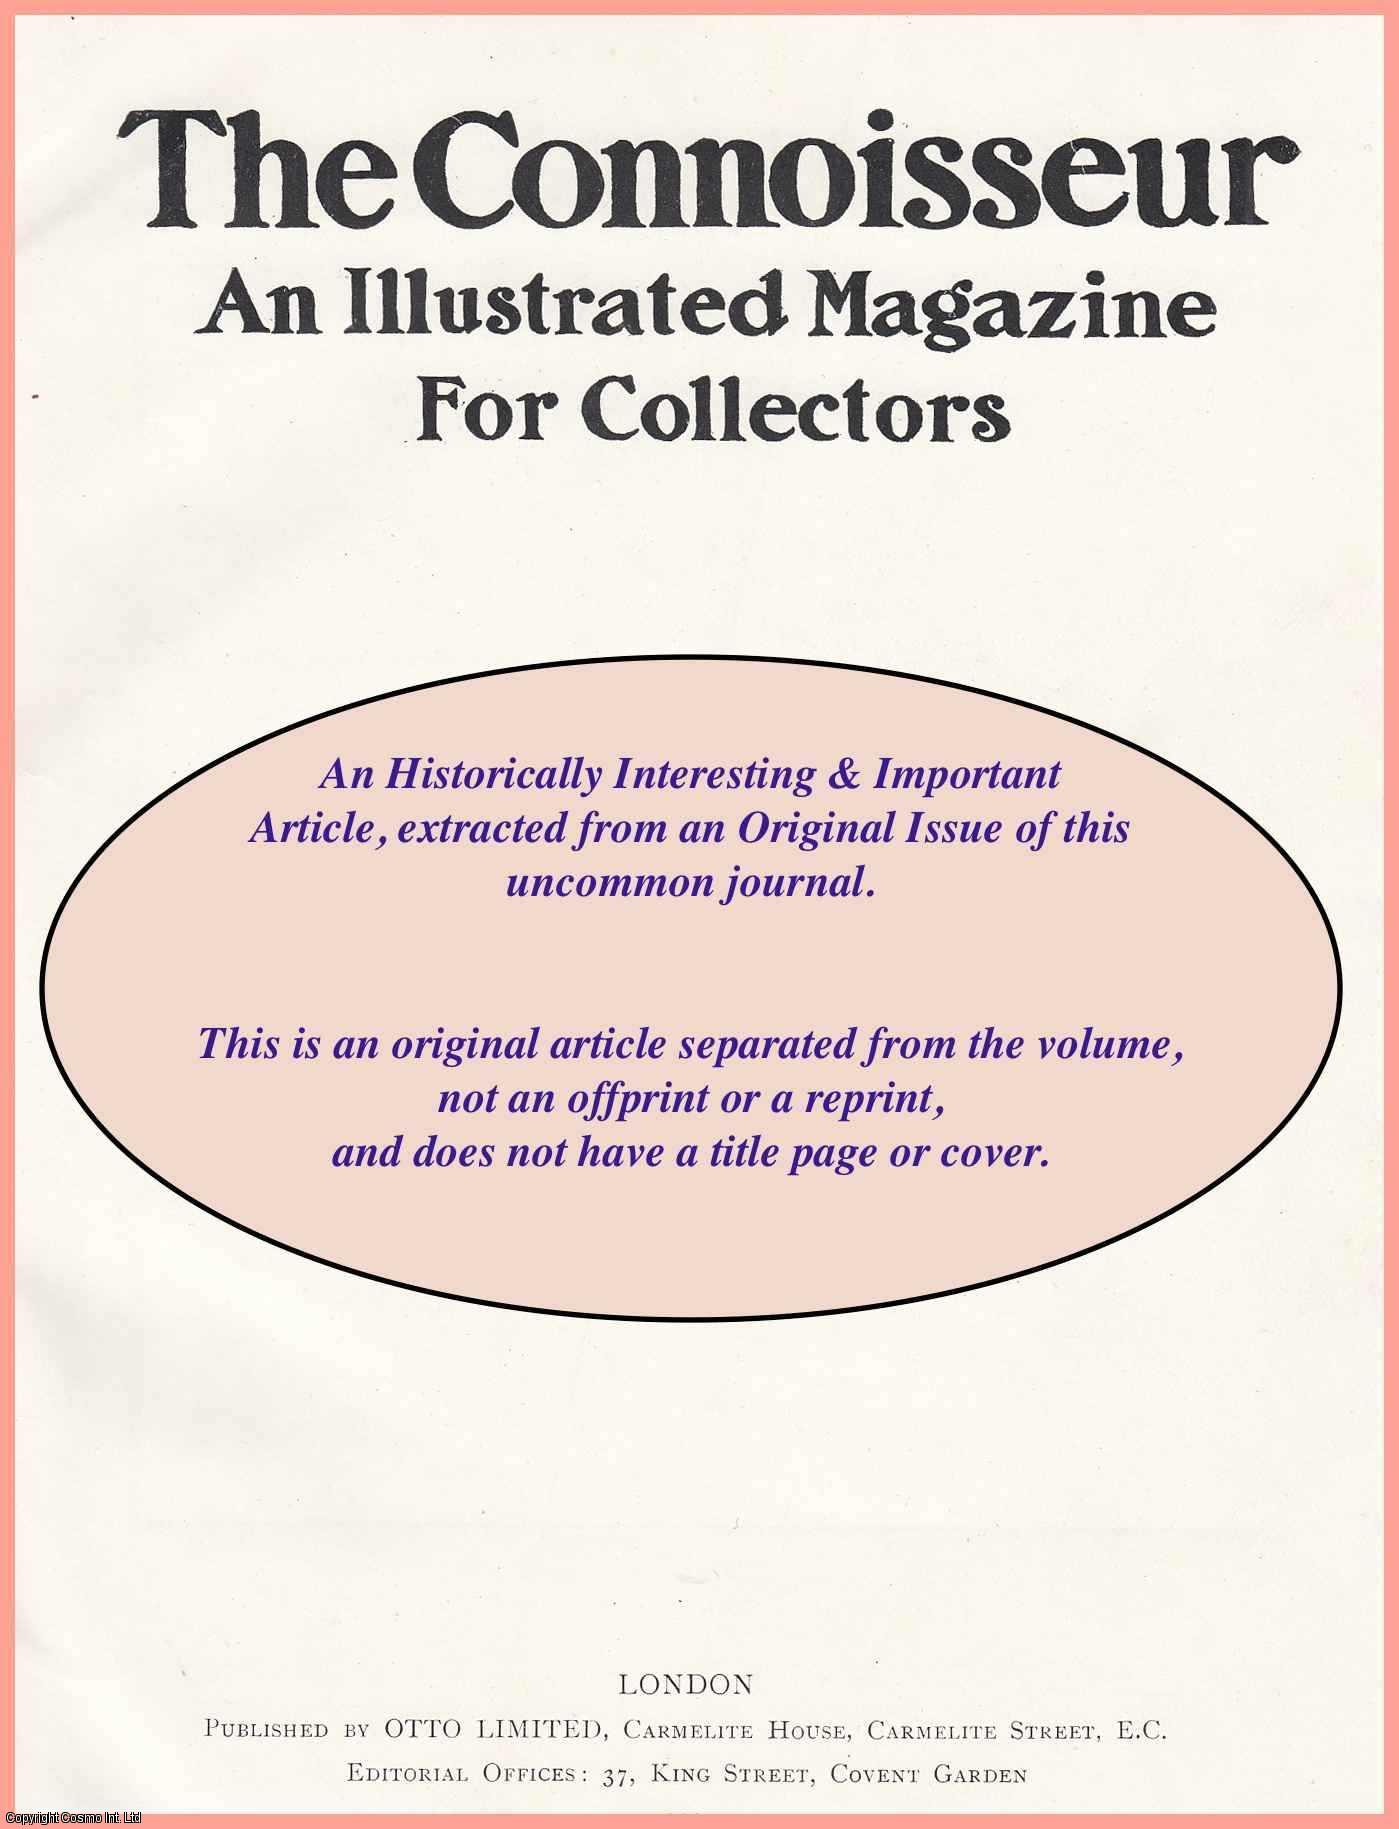 ---. - The Official Catalogue of Valuable Works of Art in Private Collections in Italy. An original article from The Connoisseur, 1904.